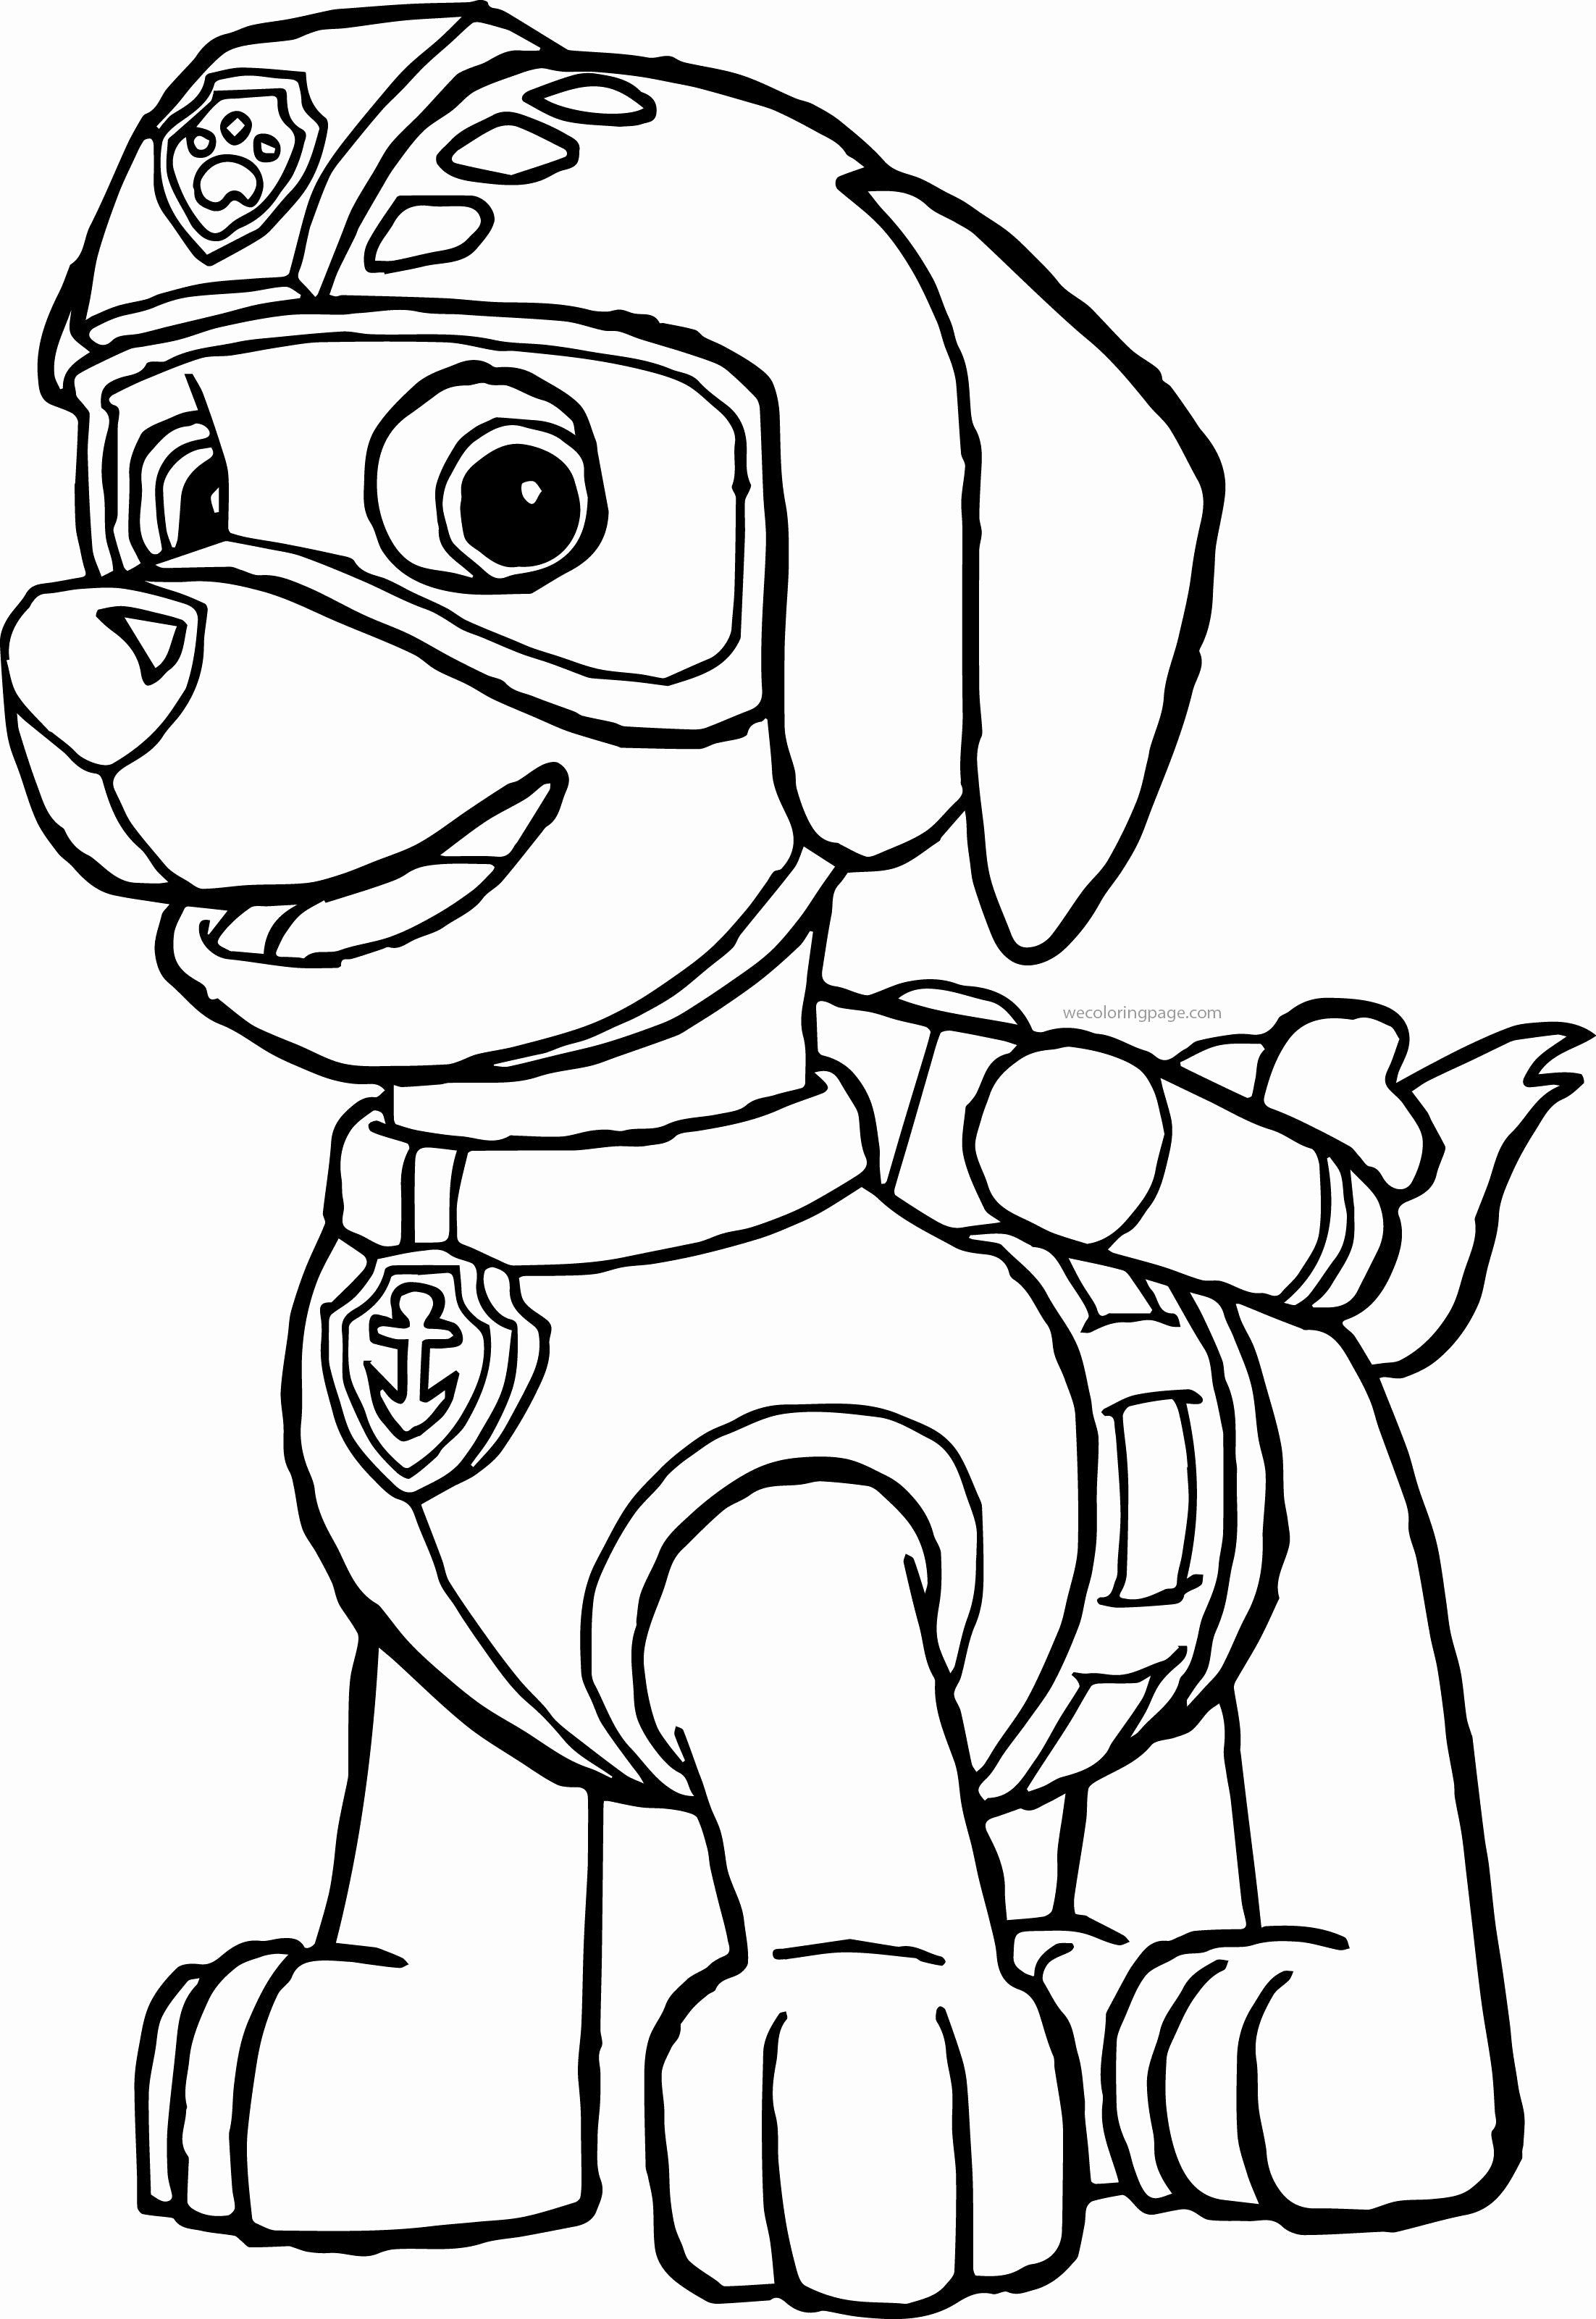 Rocky Paw Patrol Coloring Page Elegant Rocky Paw Patrol Coloring Page At Getcolorings Paw Patrol Coloring Pages Paw Patrol Coloring Paw Patrol Printables